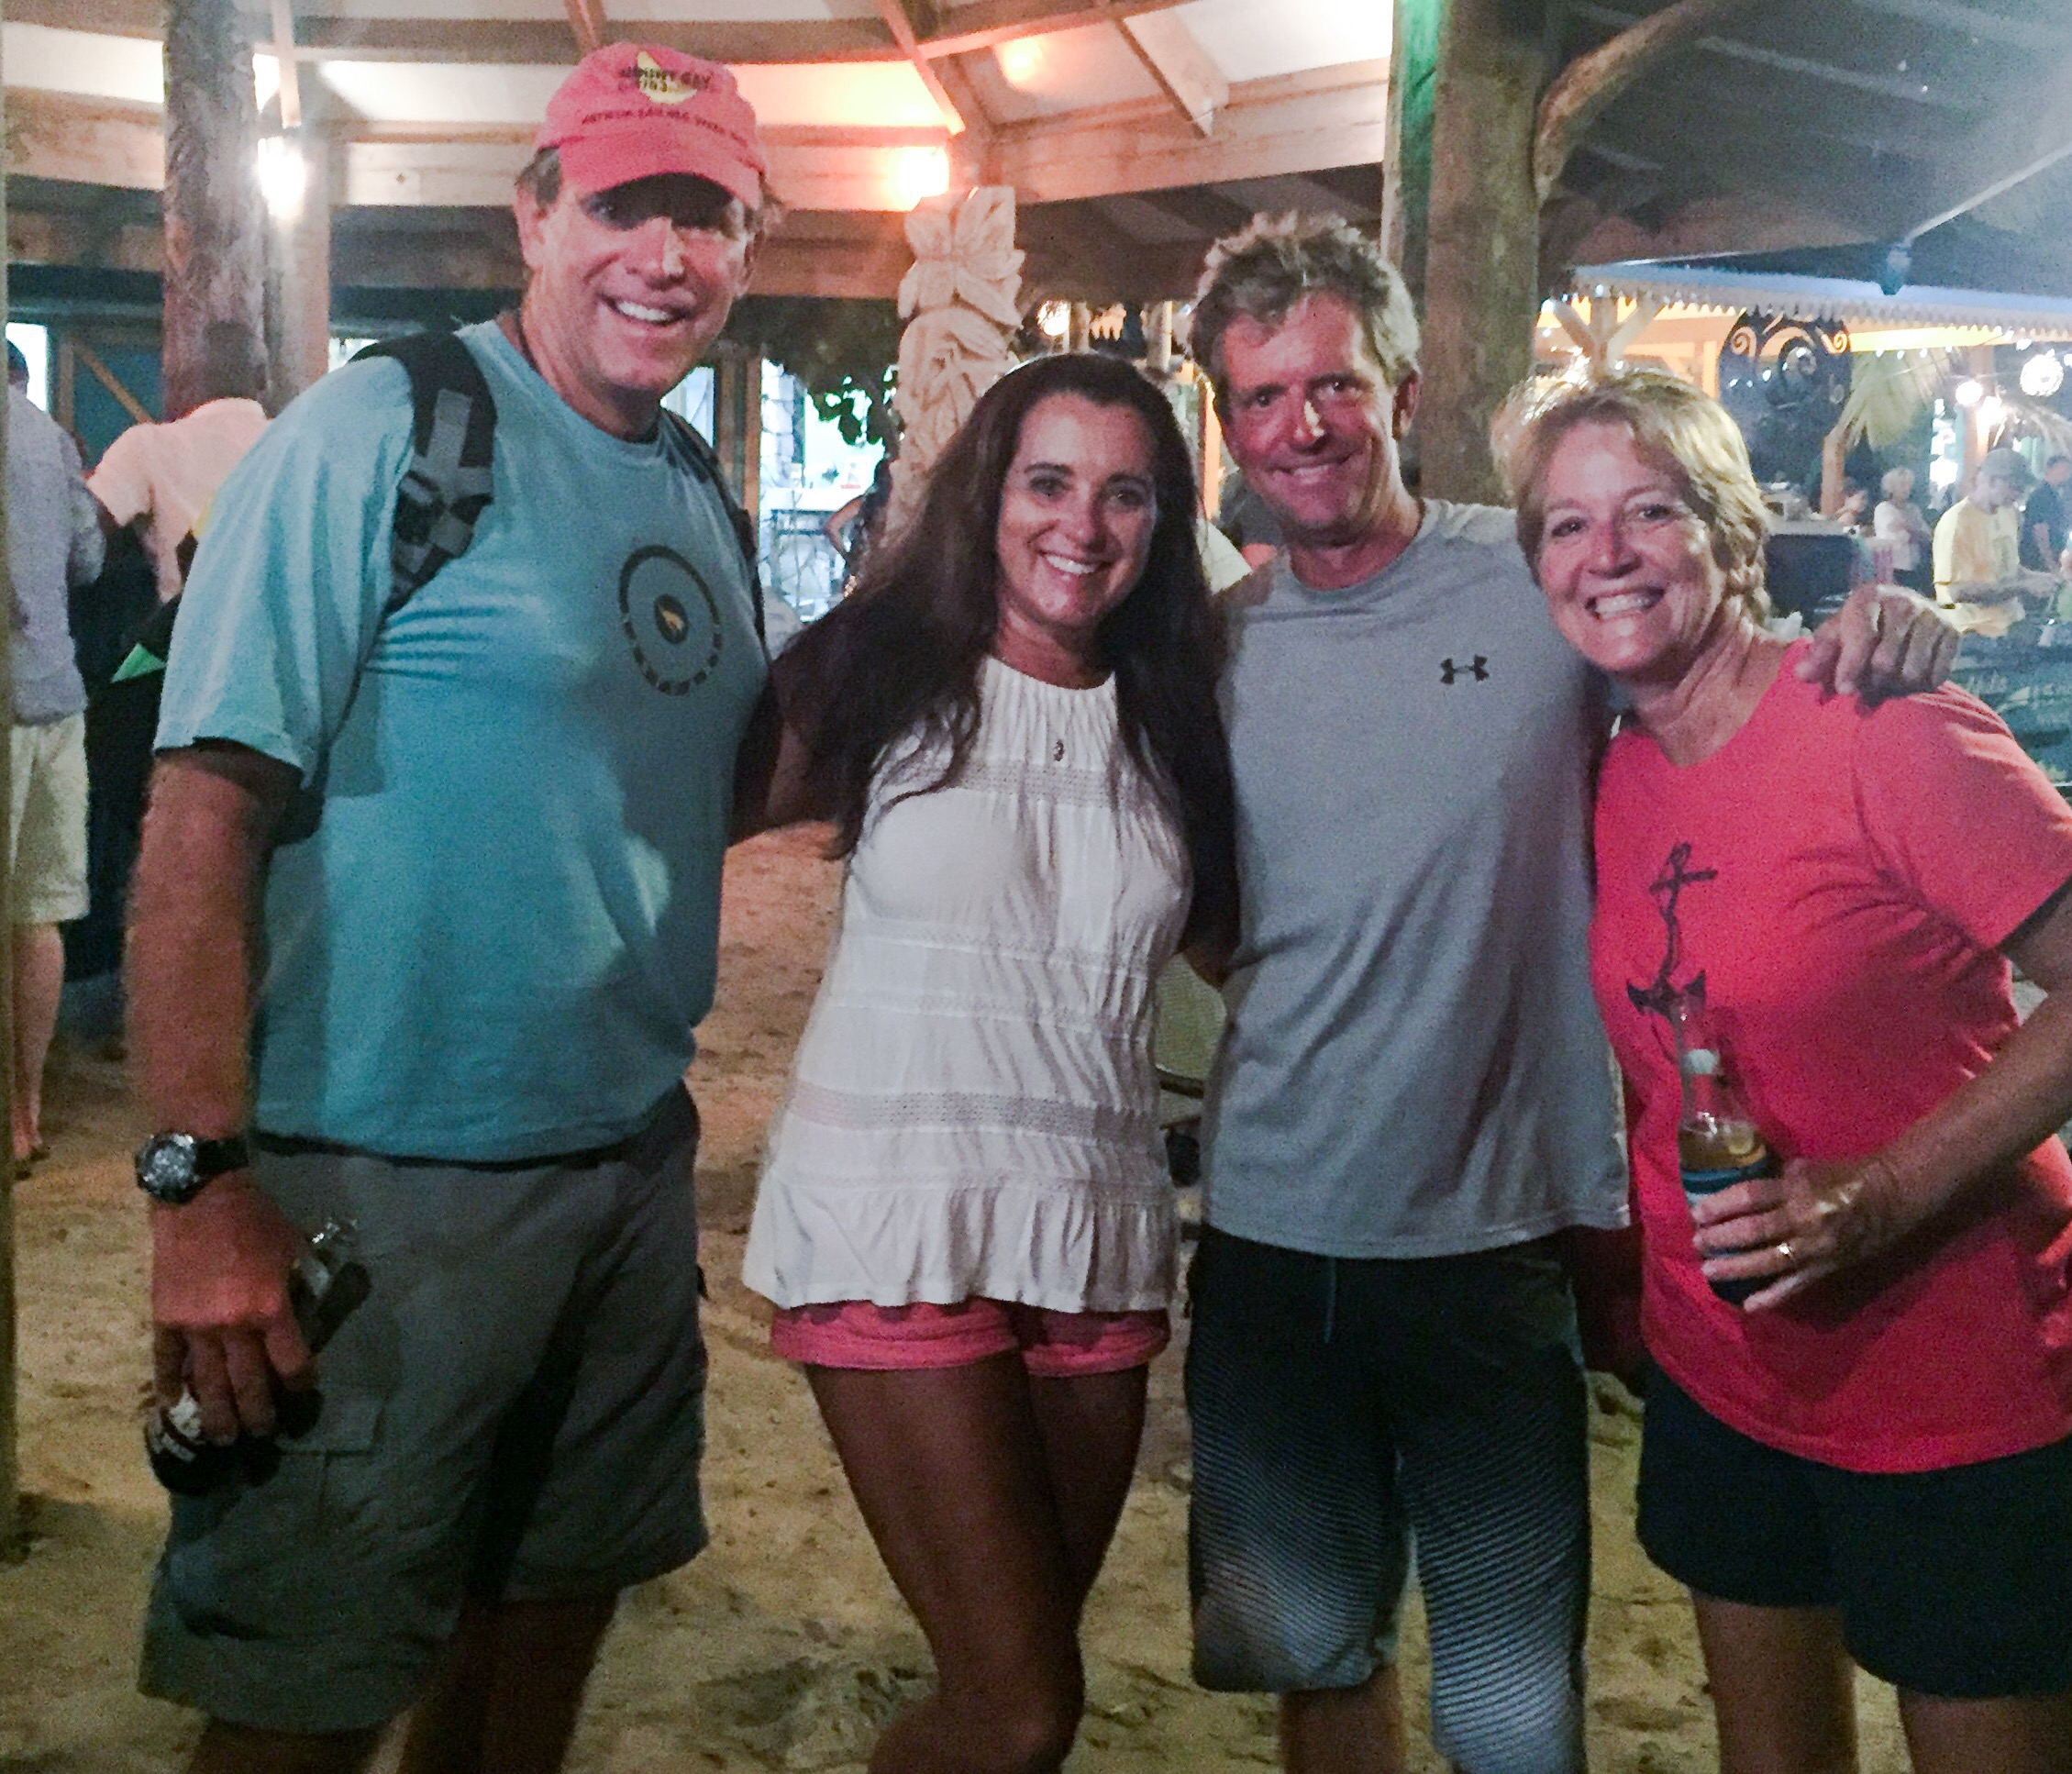 Dave and Renee from Allegria at Trellis Bay